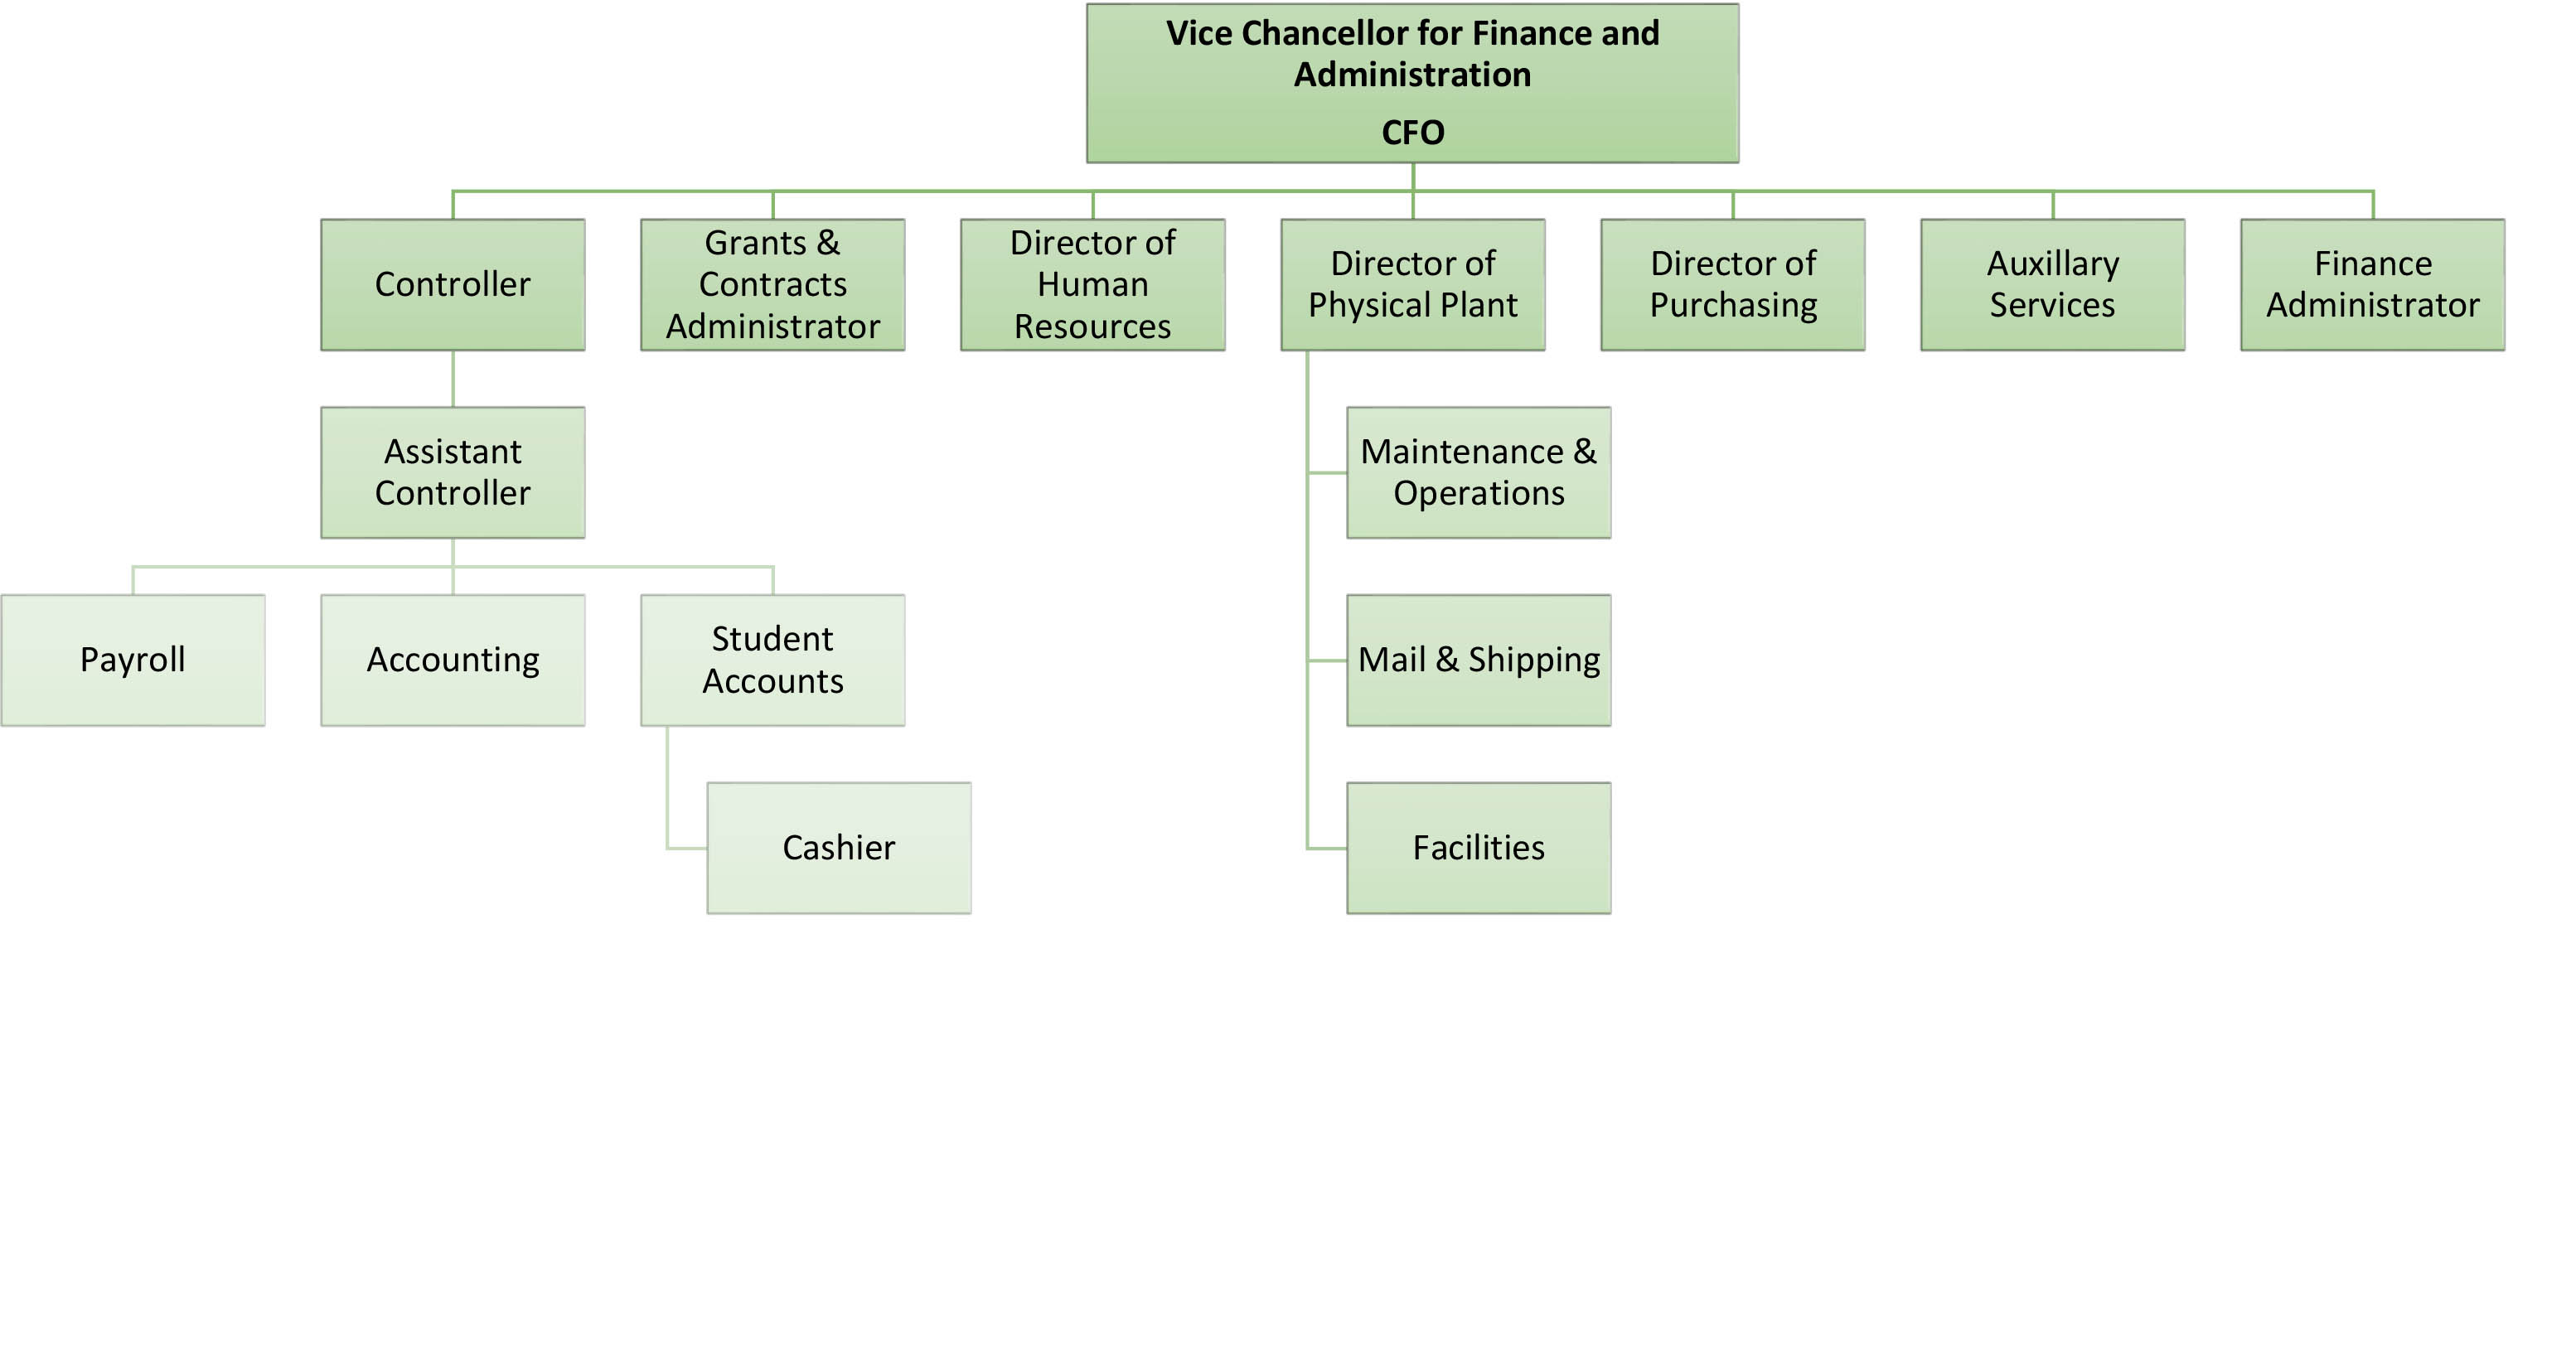 Finance and Administration Organizational Chart